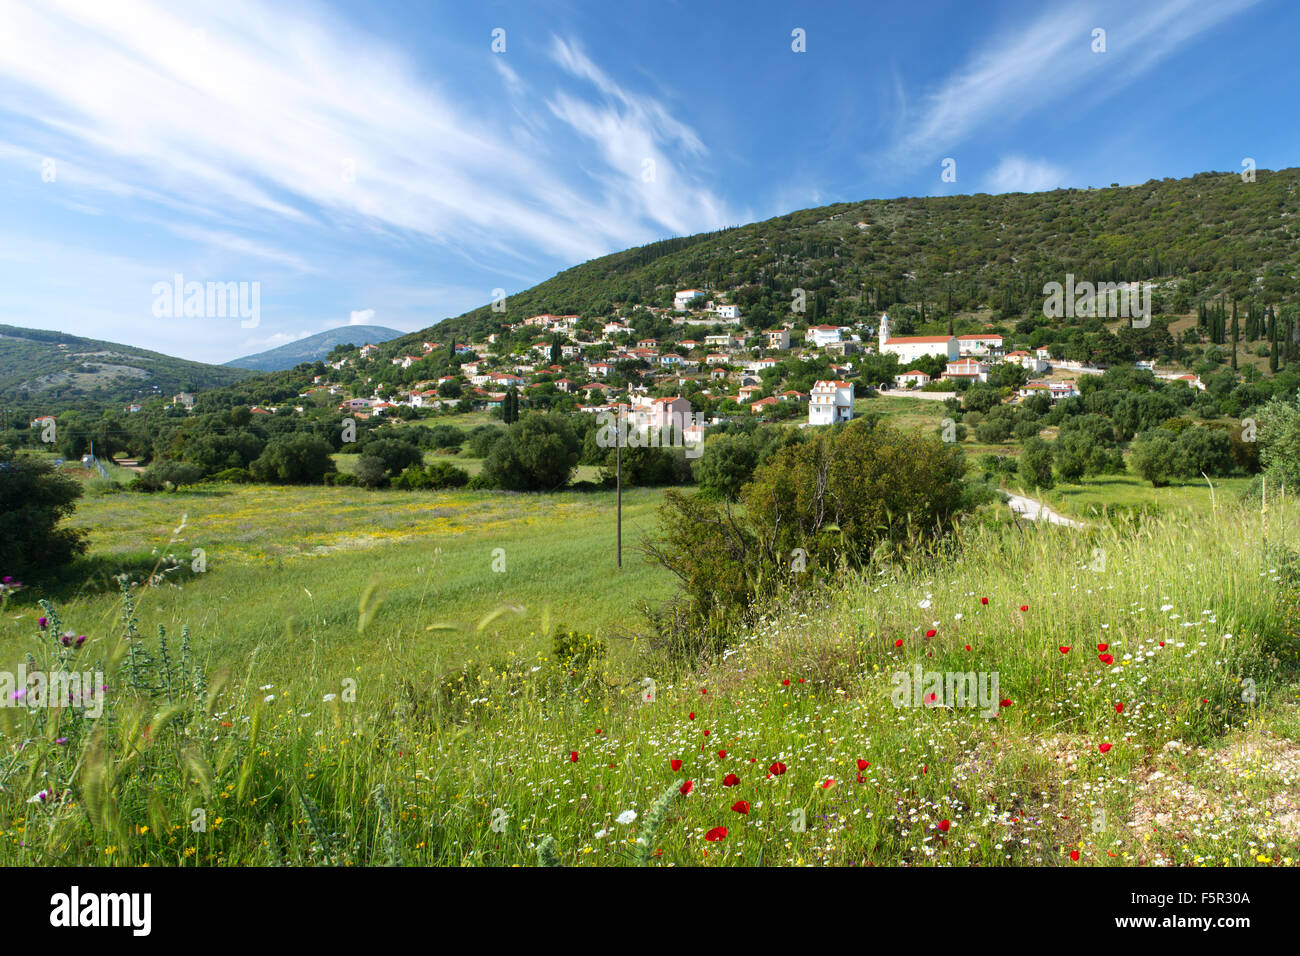 The village of Troianata, Kefalonia, with wildflowers growing in the foreground Stock Photo